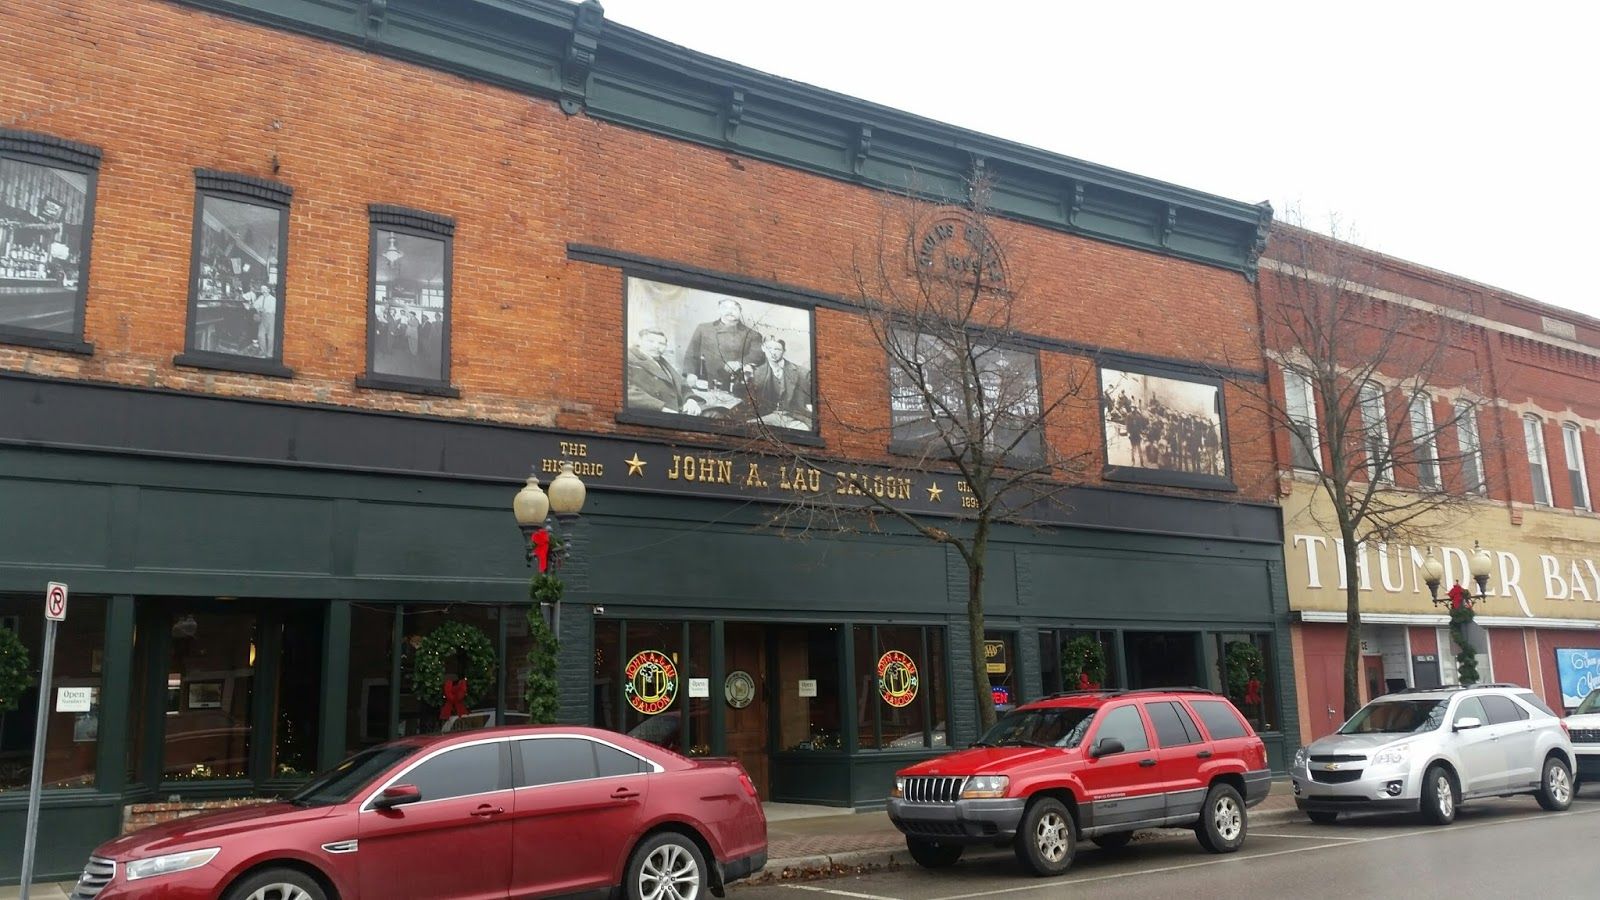 John A. Lau Saloon in Alpena, Michigan